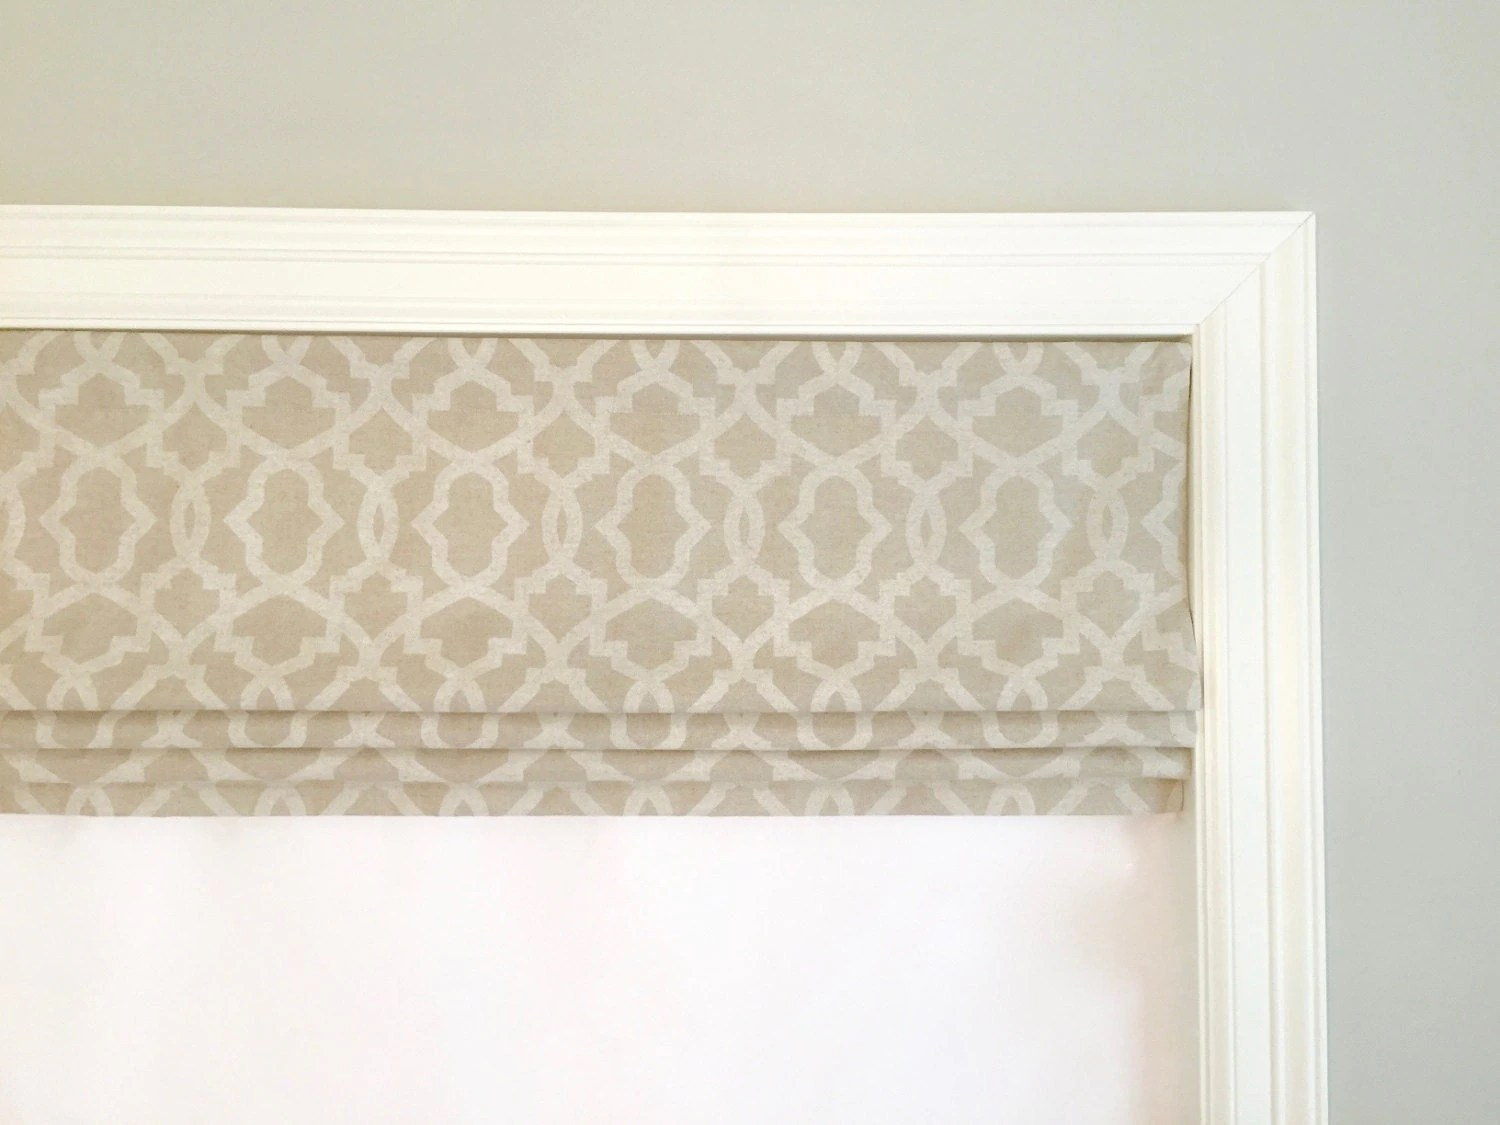 Faux Fake Flat Roman Shade Valance Your Choice Of Fabric